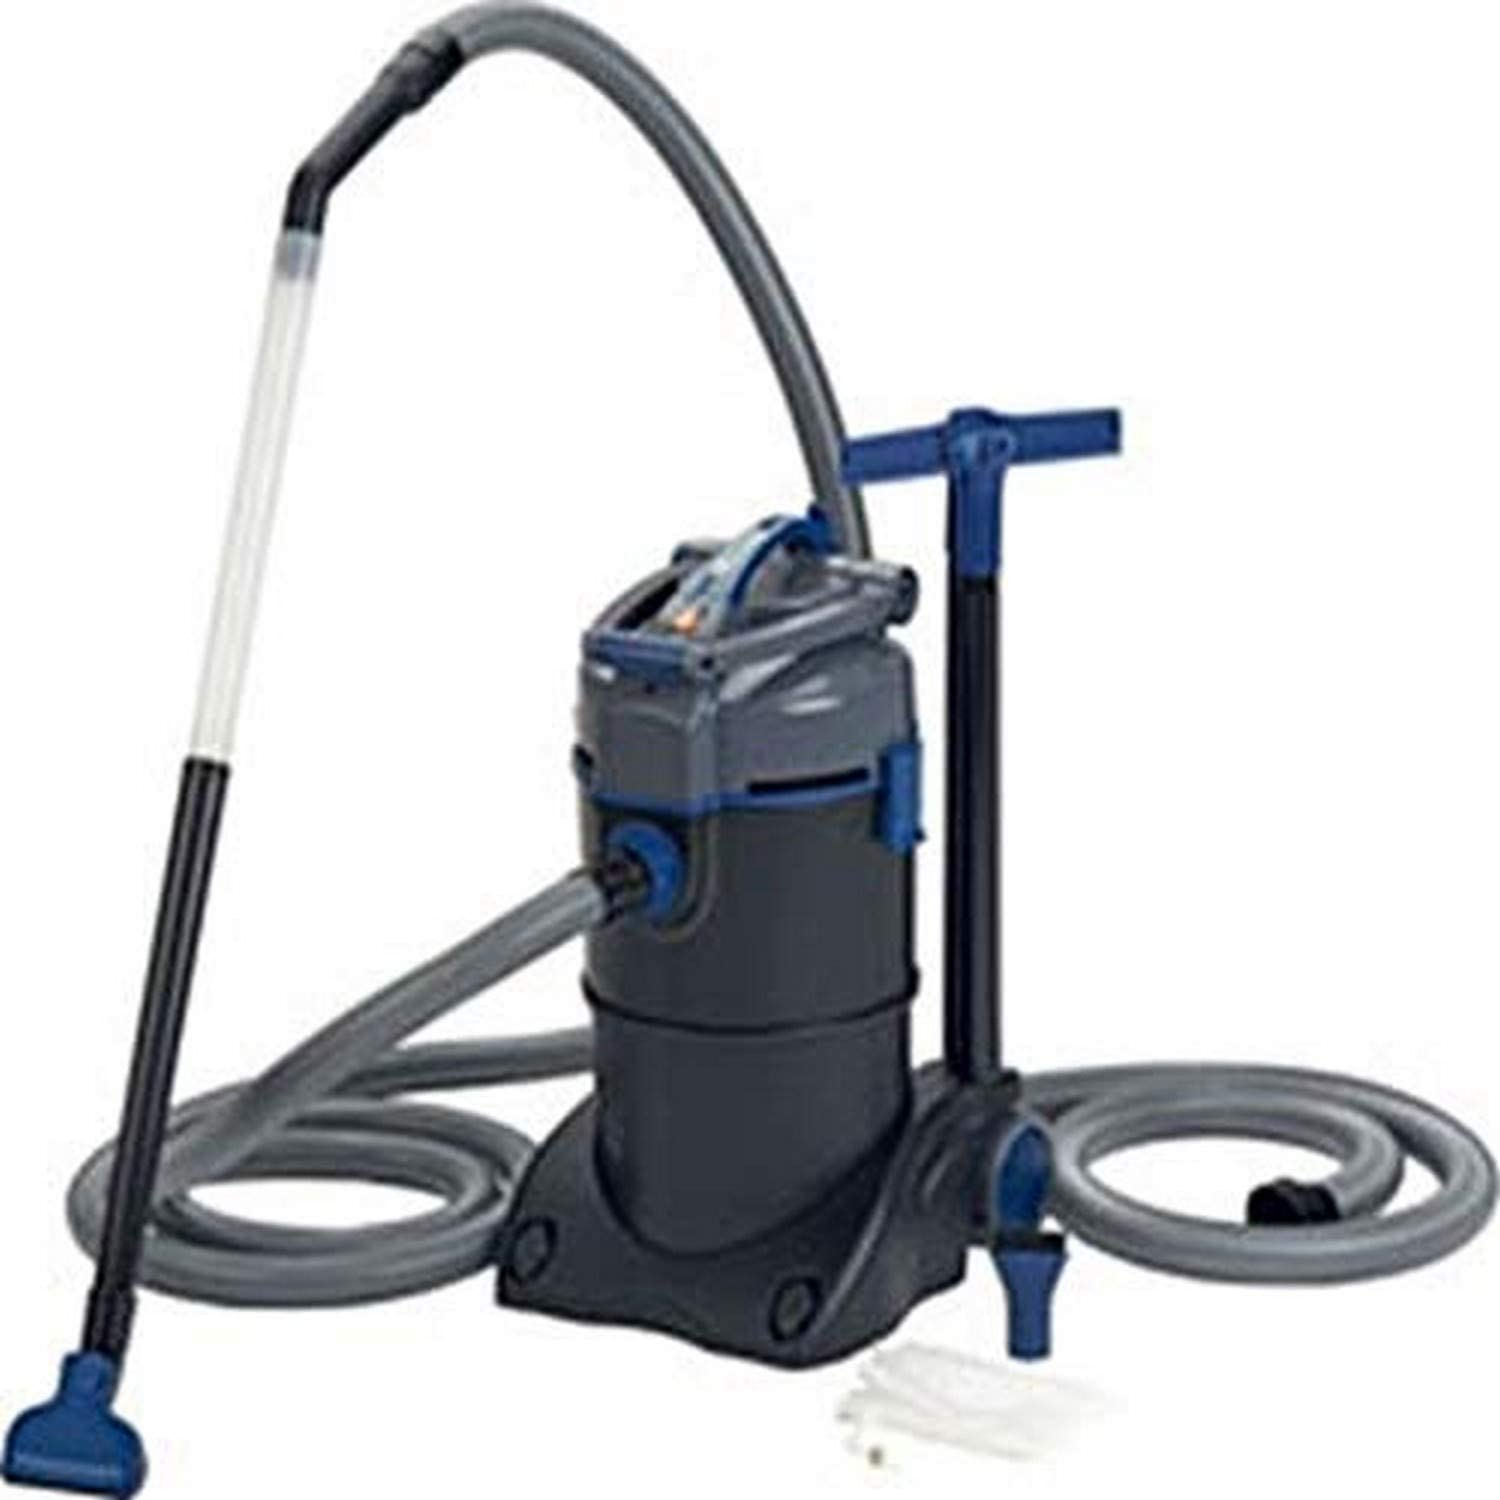 Battery powered Pool Vacuums